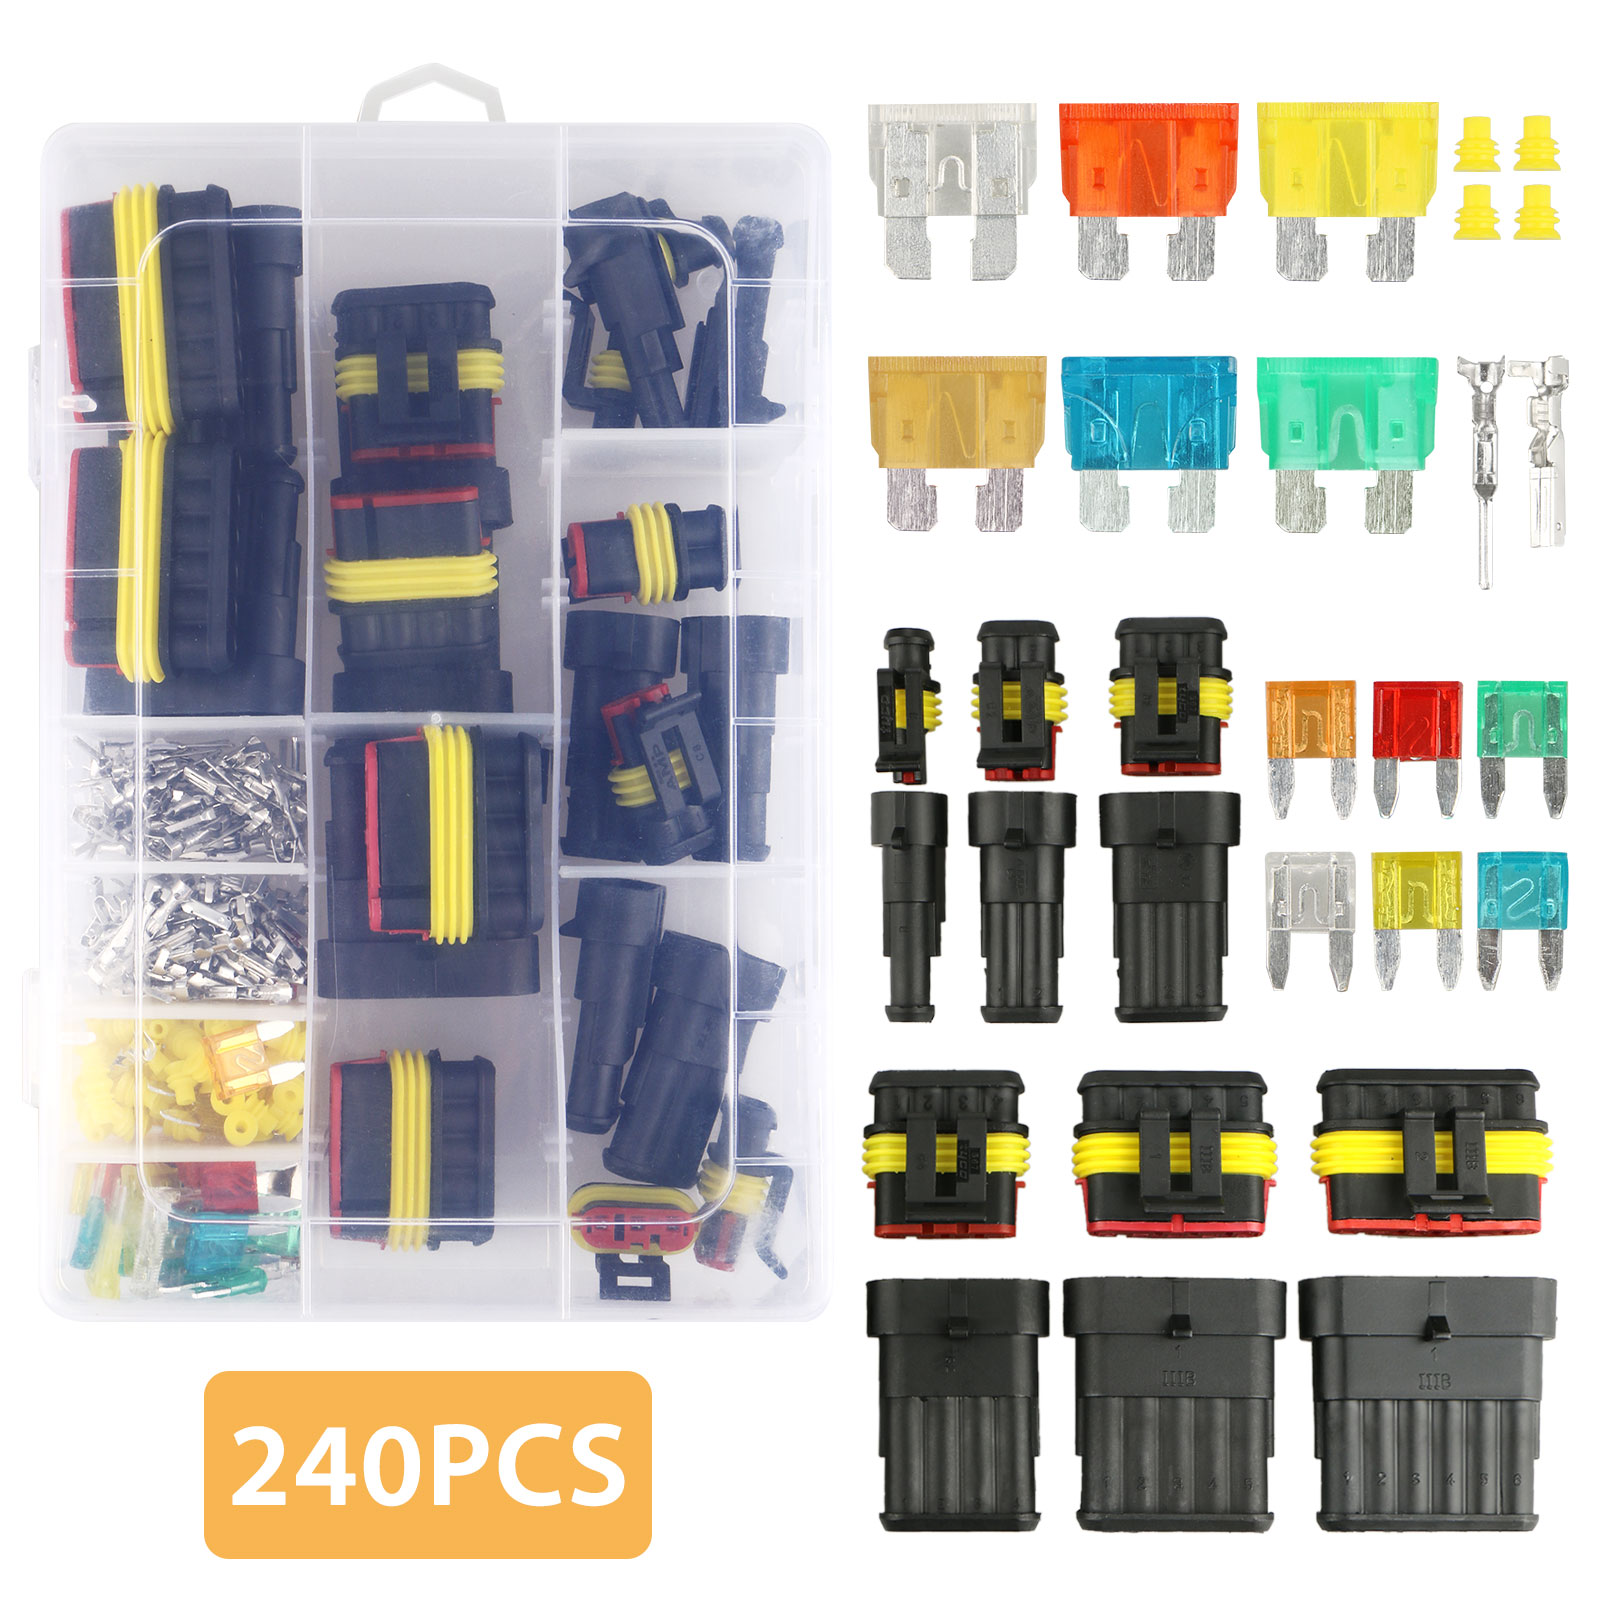 hight resolution of tsv 240pcs 1 2 3 4 5 6 pin waterproof car auto electrical wire connector terminal plug with 5 30 amp blade fuses assortment kit for motorcycle scooter